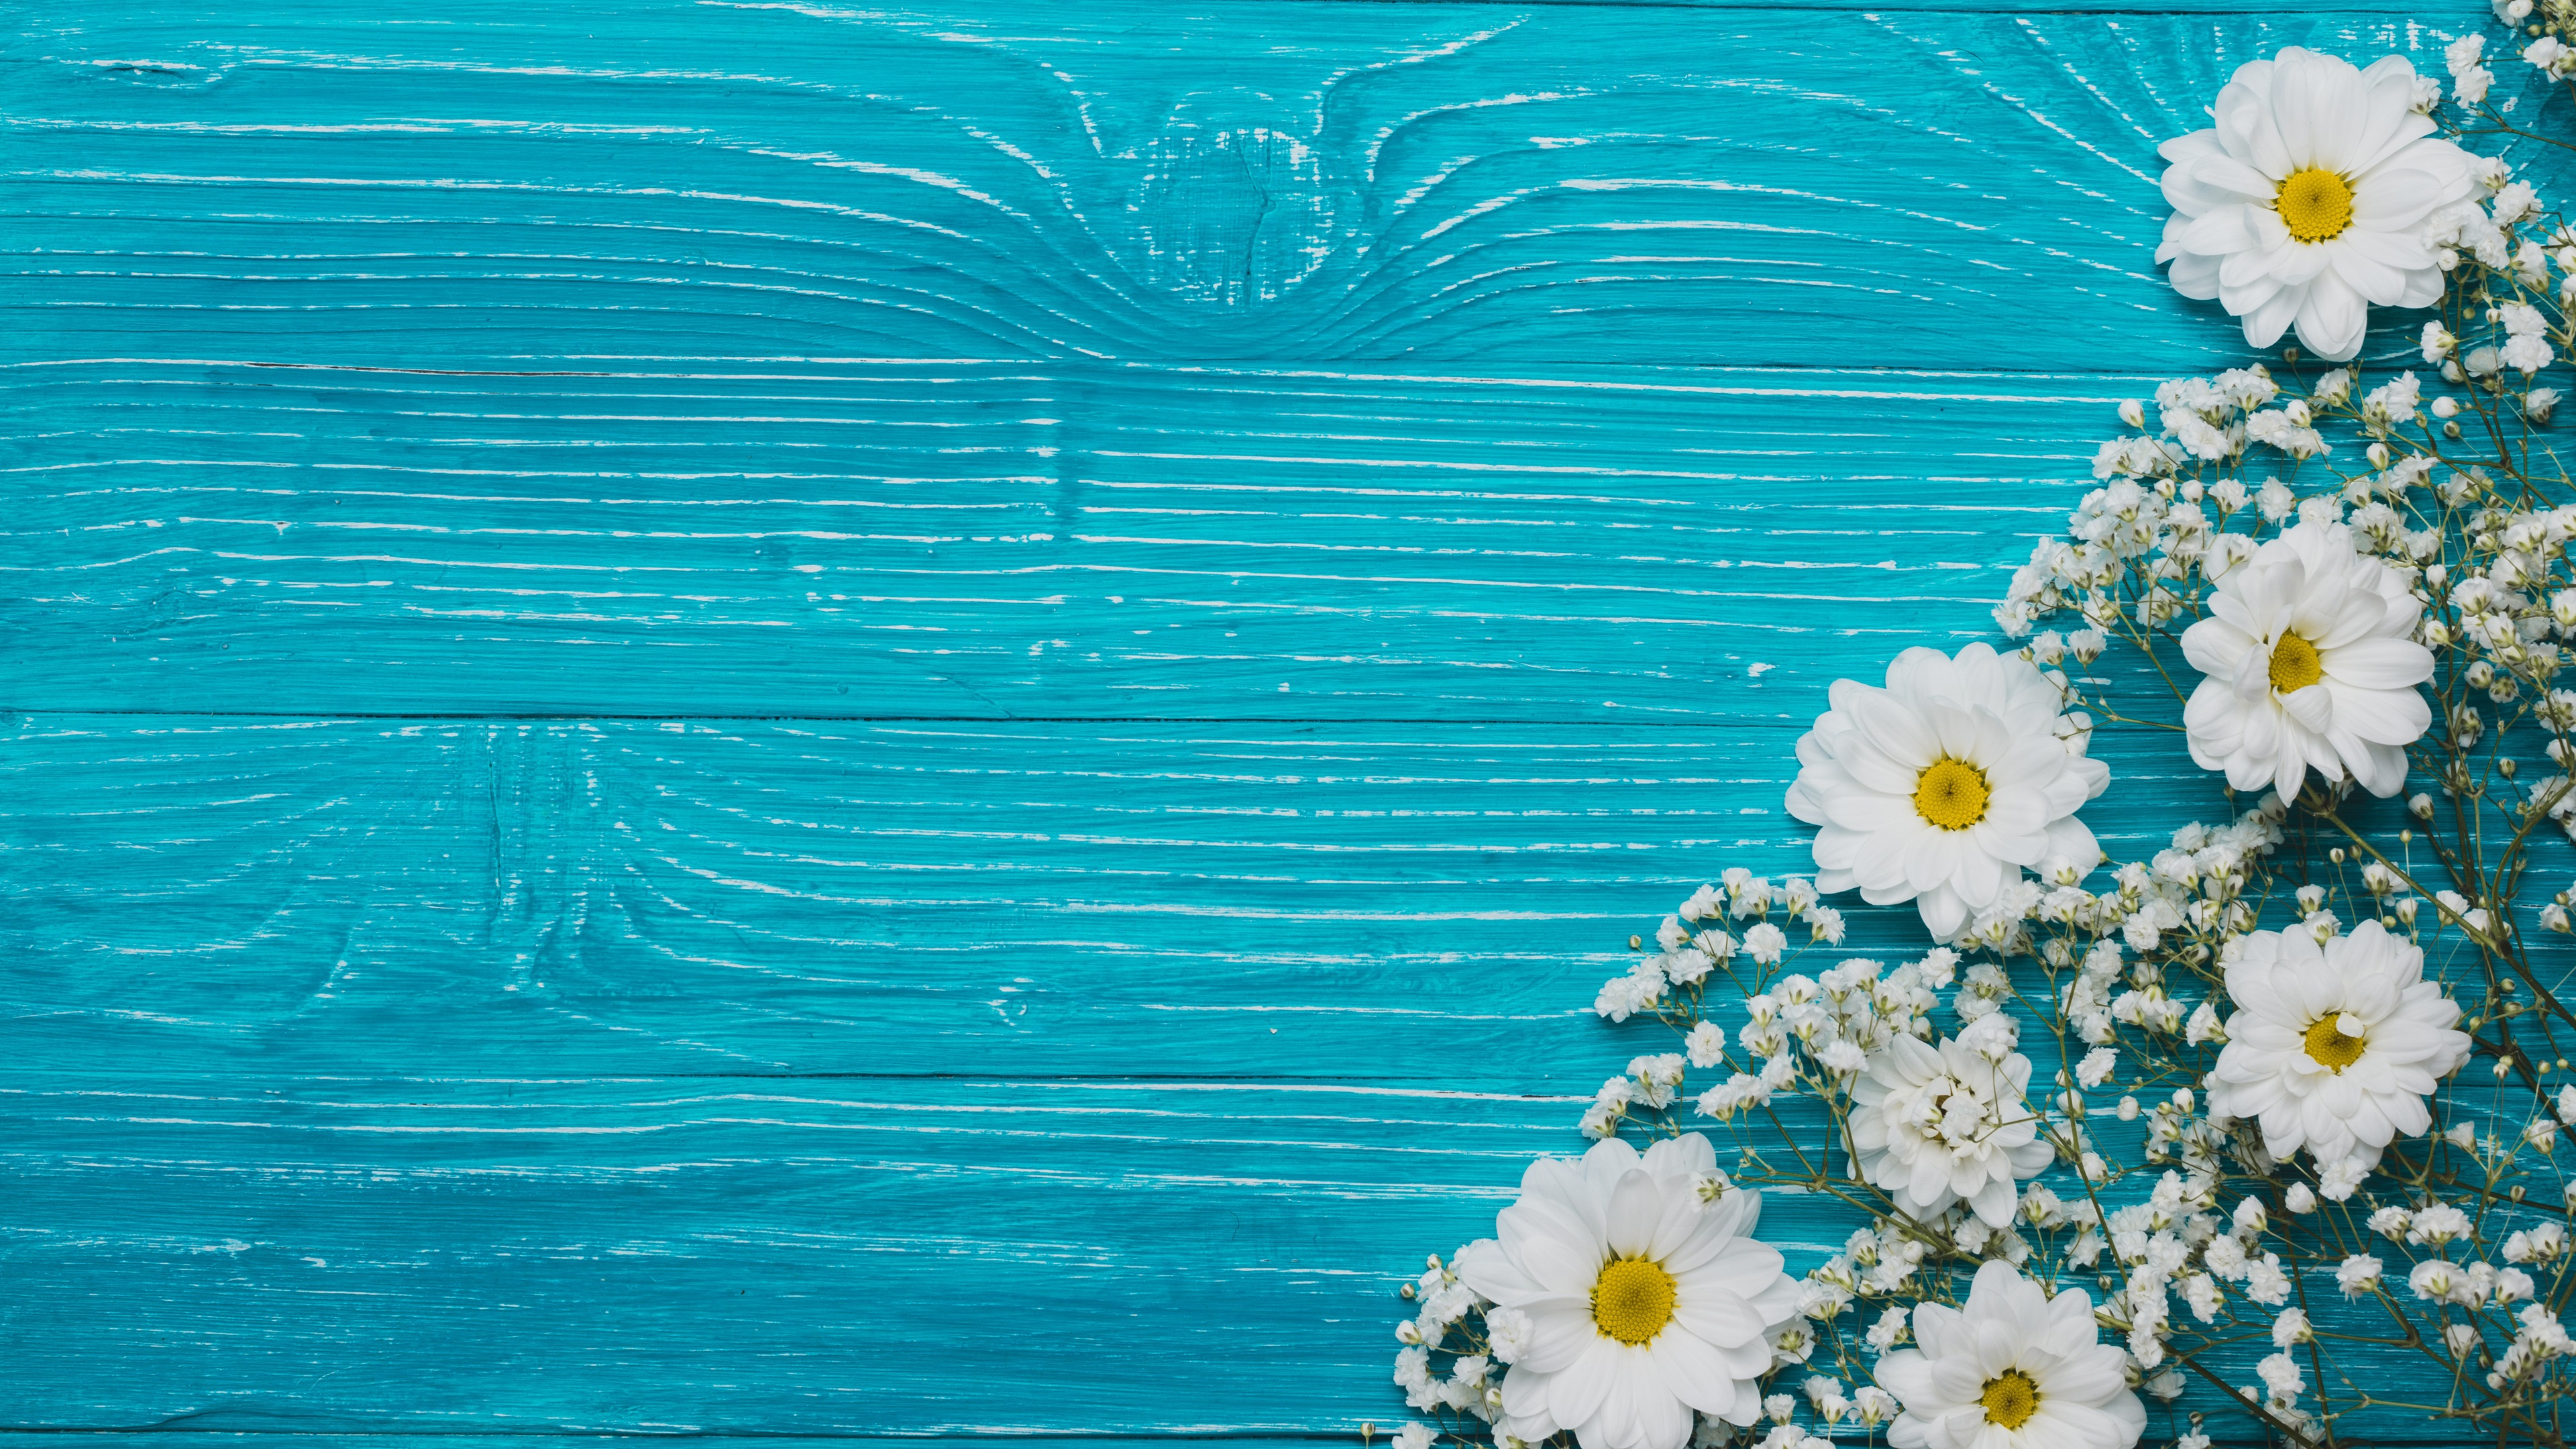 Wallpaper Chrysanthemum And White Flowers Blue Background